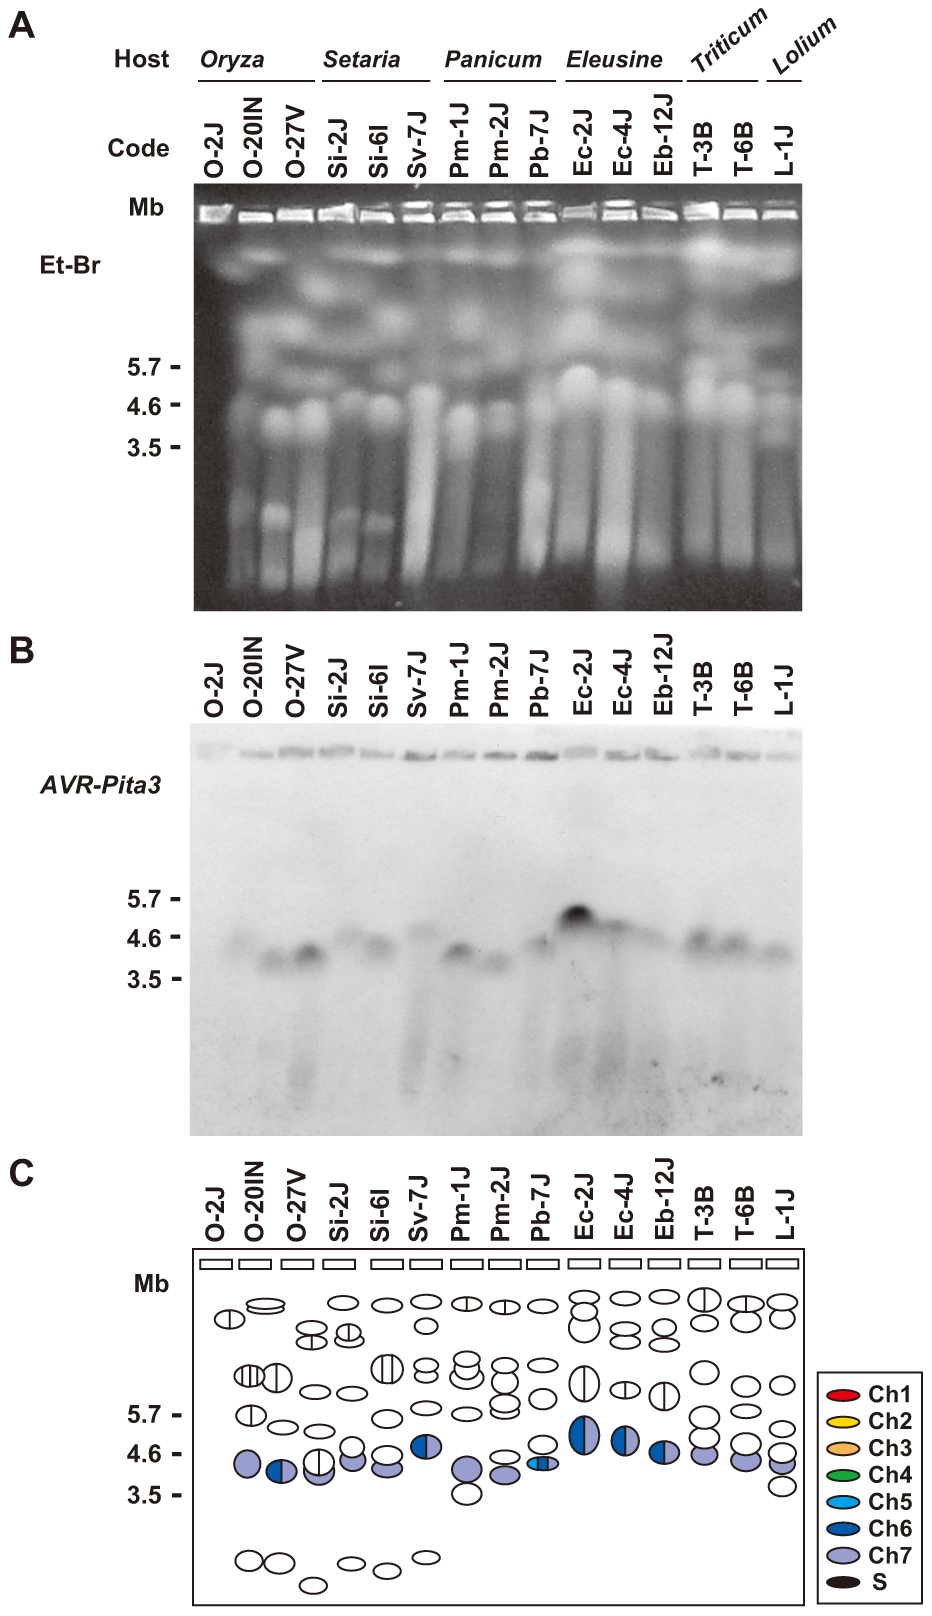 CHEF-Southern analyses of chromosomal locations of <i>AVR-Pita3</i> in representative isolates of <i>P. oryzae</i>.